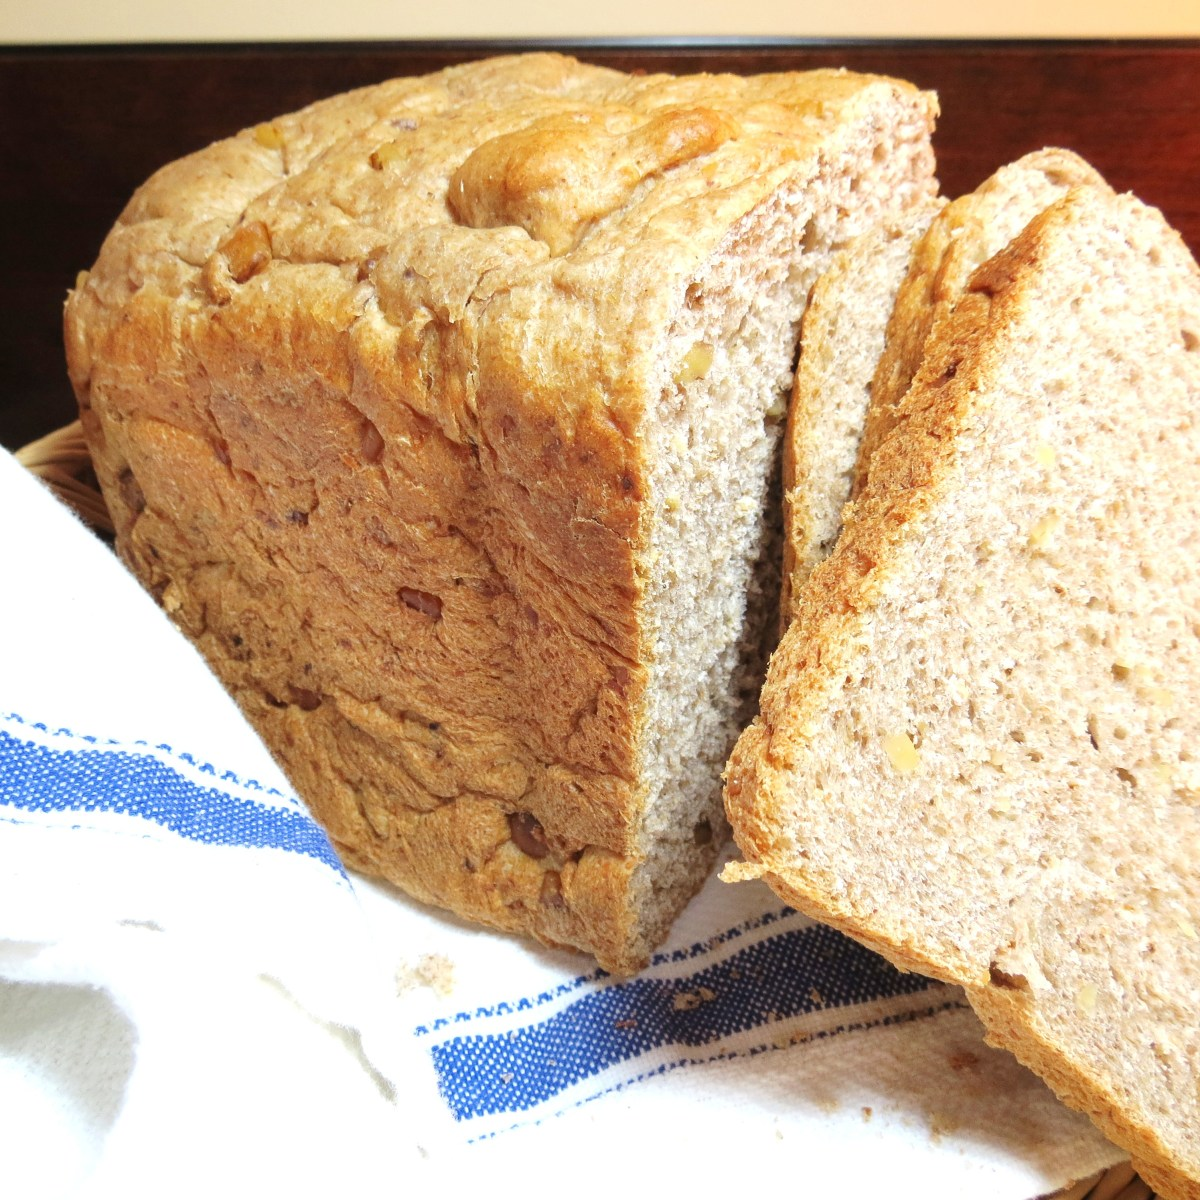 "'Request Bread' -  A Heartier Version of ""Five-Star Bread'.  Loaded with 'Good Stuff' Like Whole Wheat, Honey, Steel Cut Oats, Wheat Germ and Walnuts!"